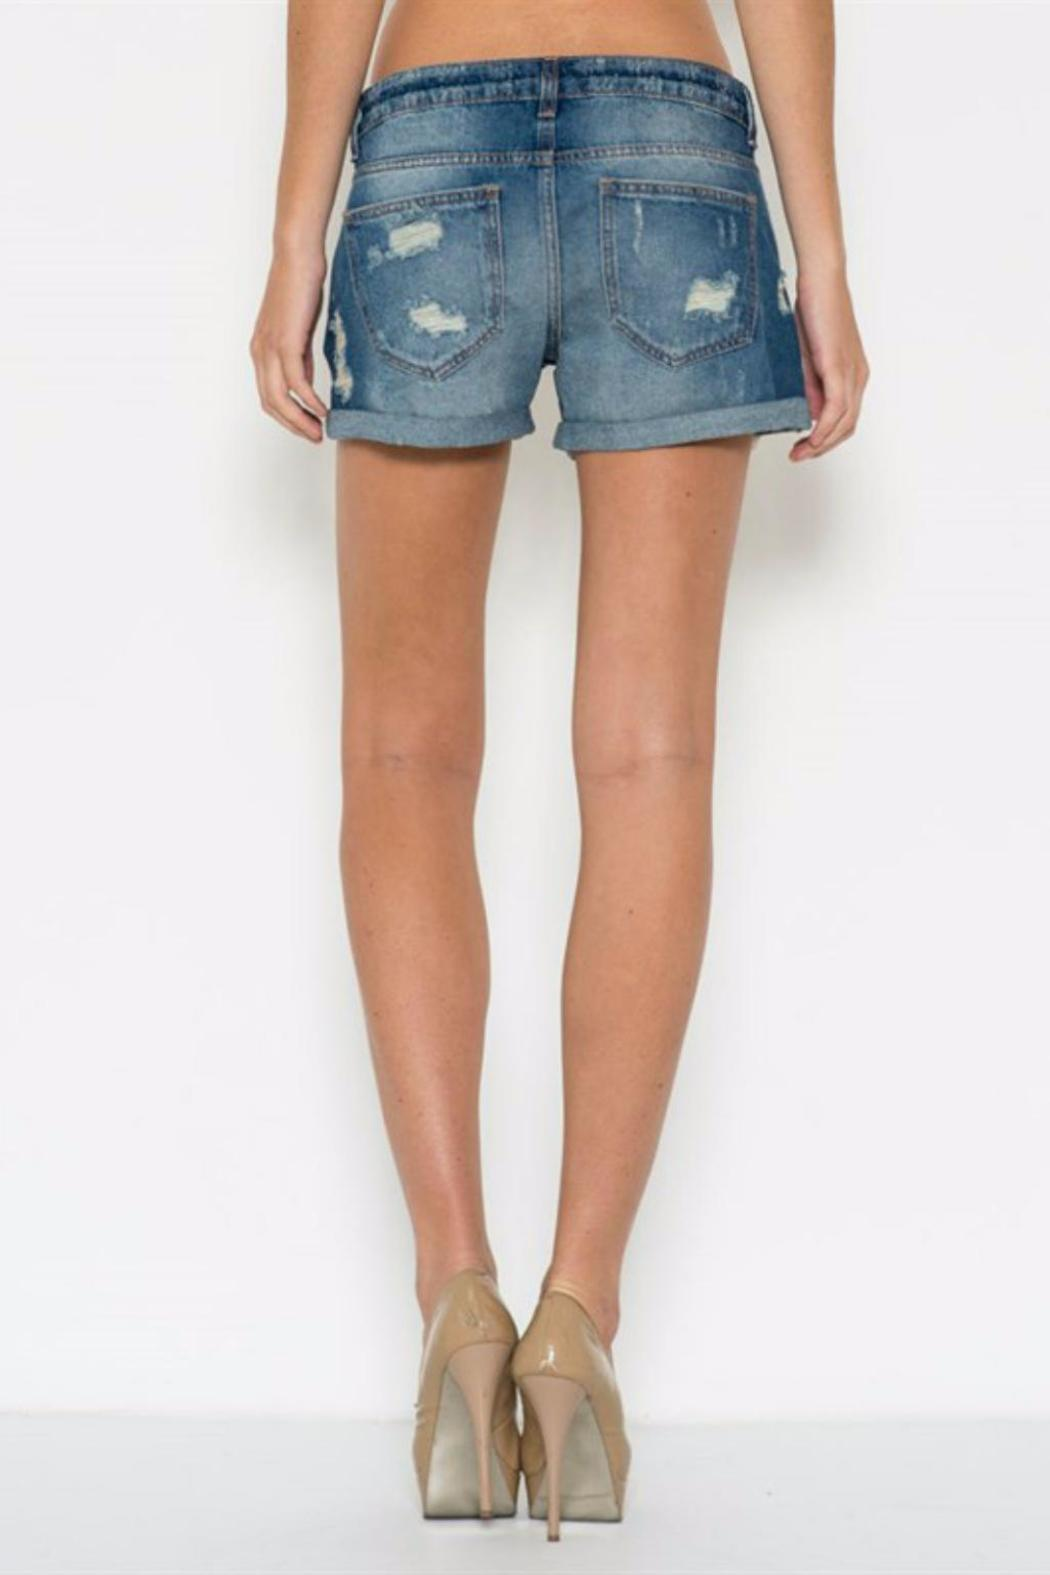 fa21bebda0 Cello Jeans Boyfriend Denim Short from North Dakota by Blue Daisy ...